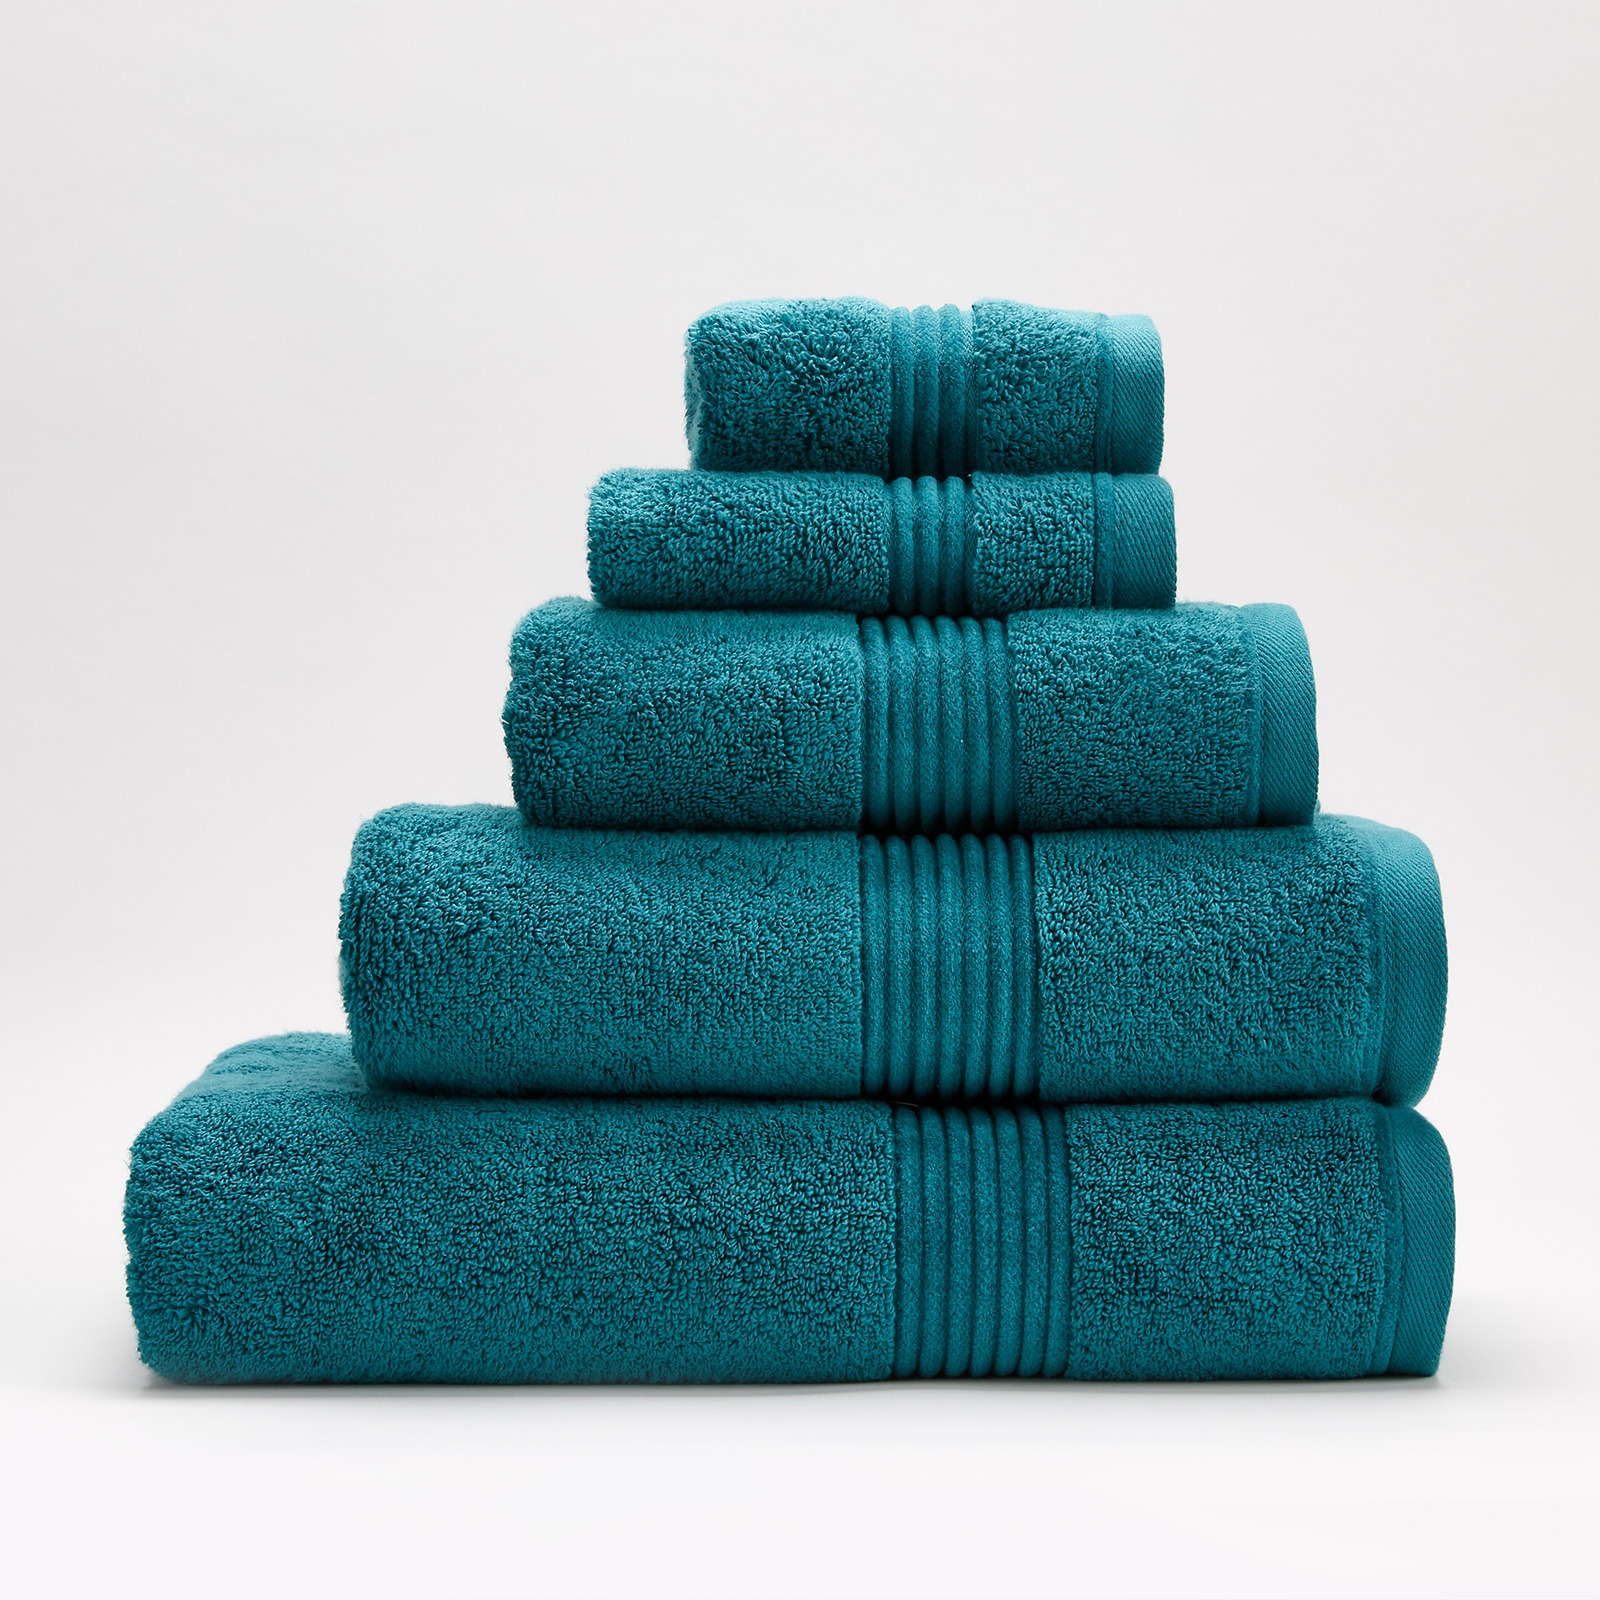 So Soft Toalha Teal Catherine Lansfield